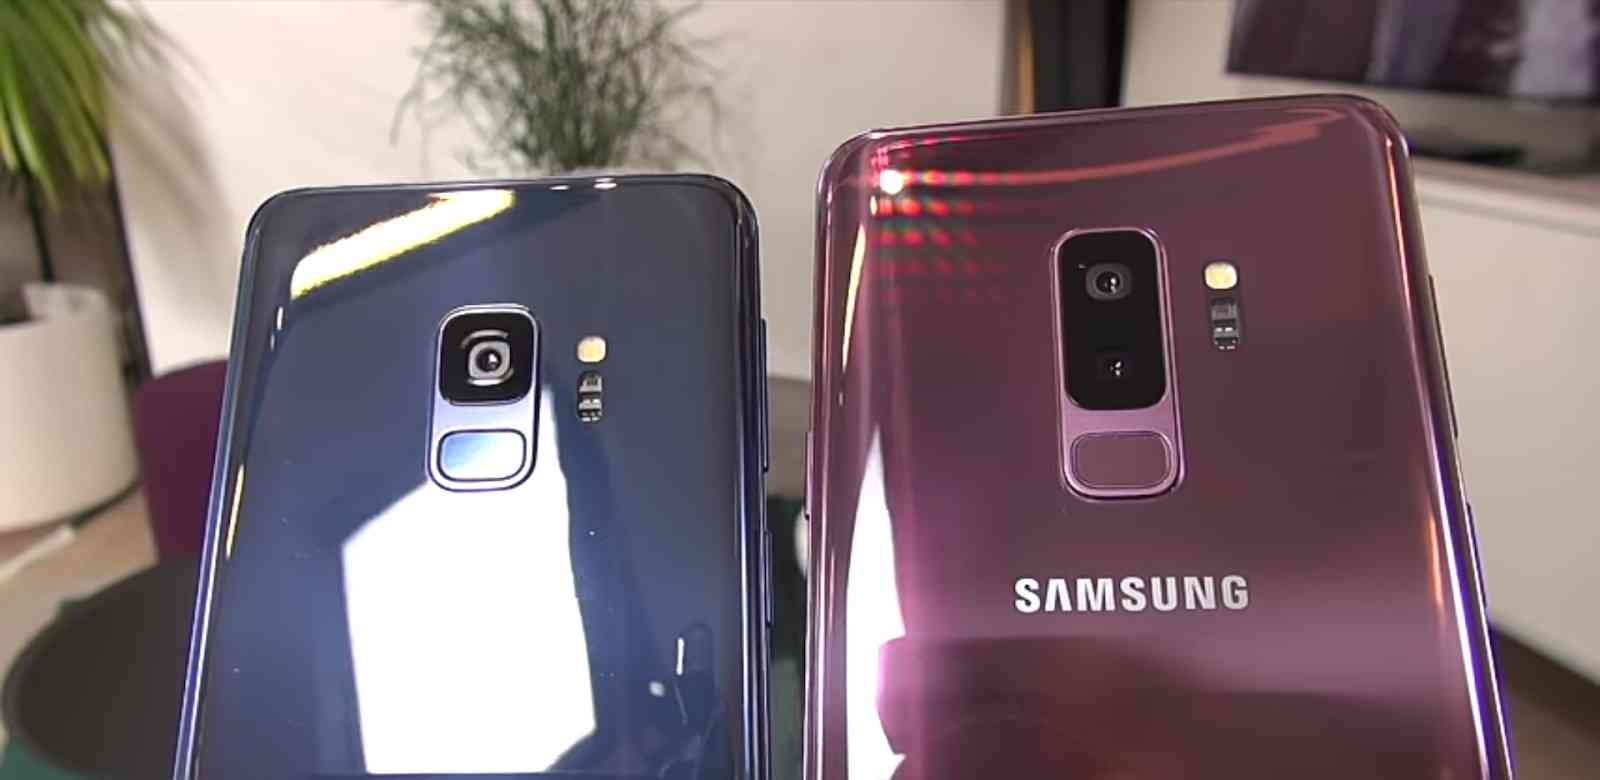 Single and Dual Lens Cameras on the Galaxy S9 and S9 Plus respectively